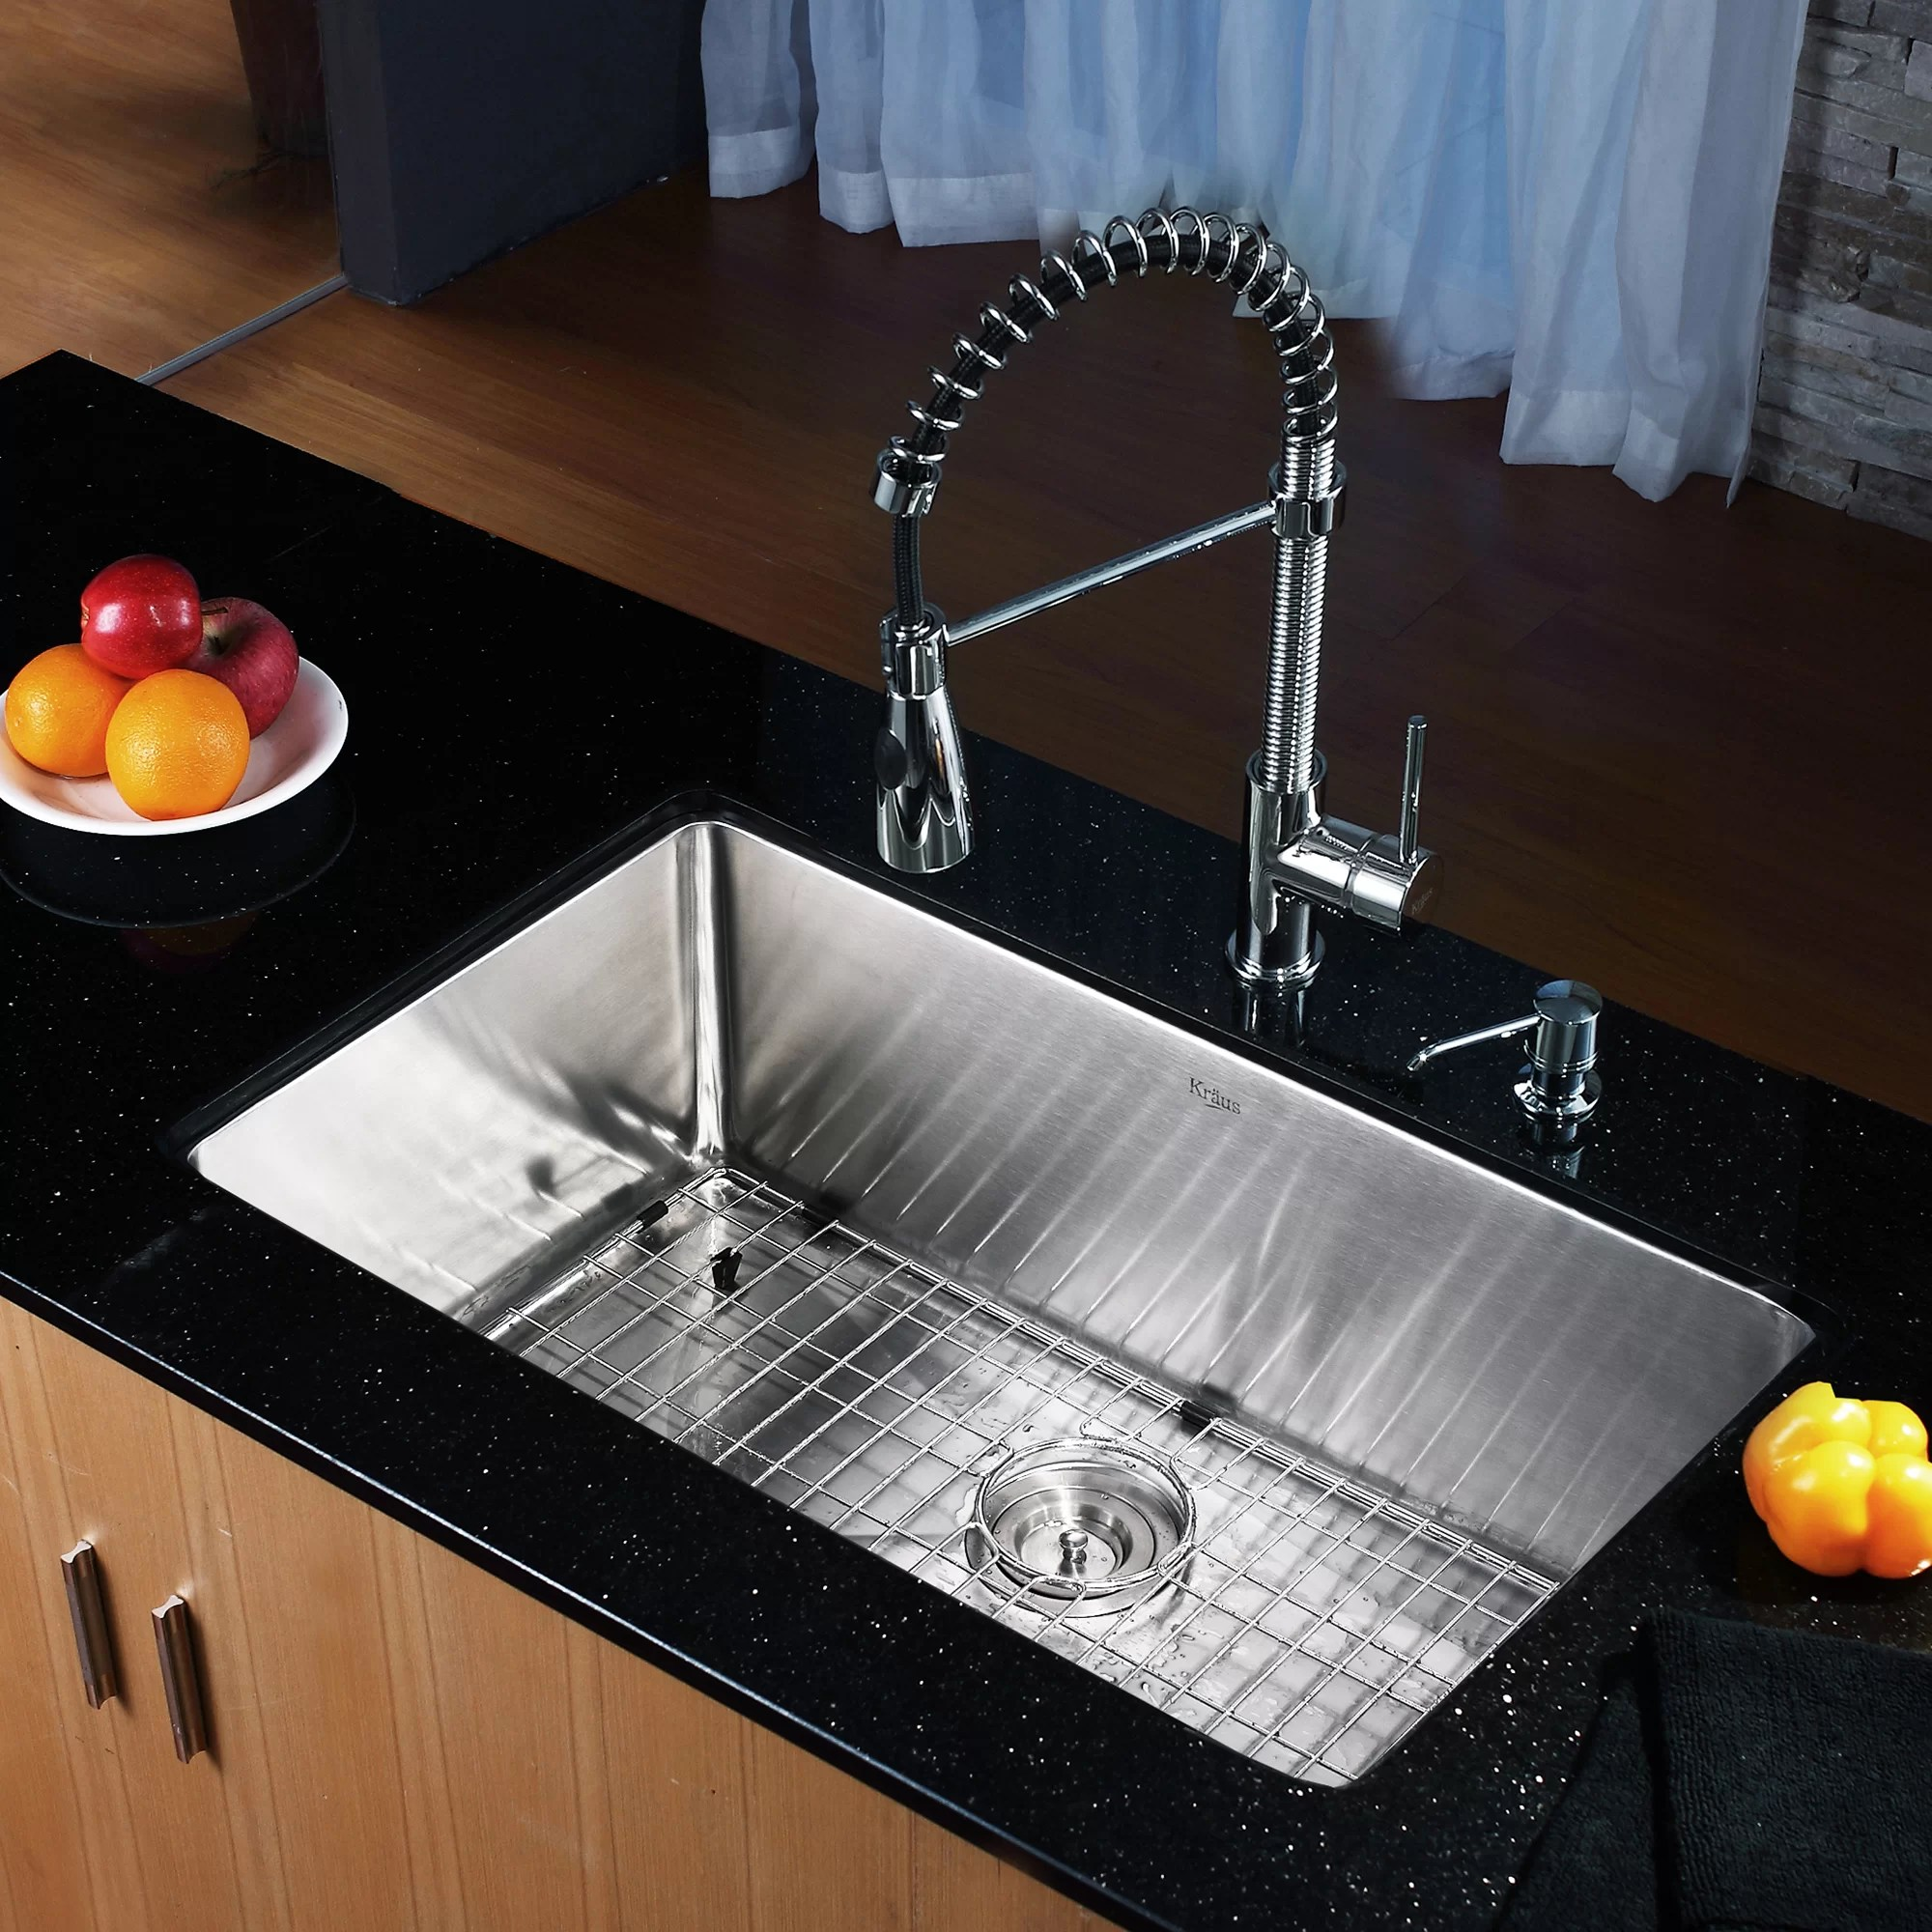 30 undermount kitchen sink china dishes kraus quot x 18 with faucet and